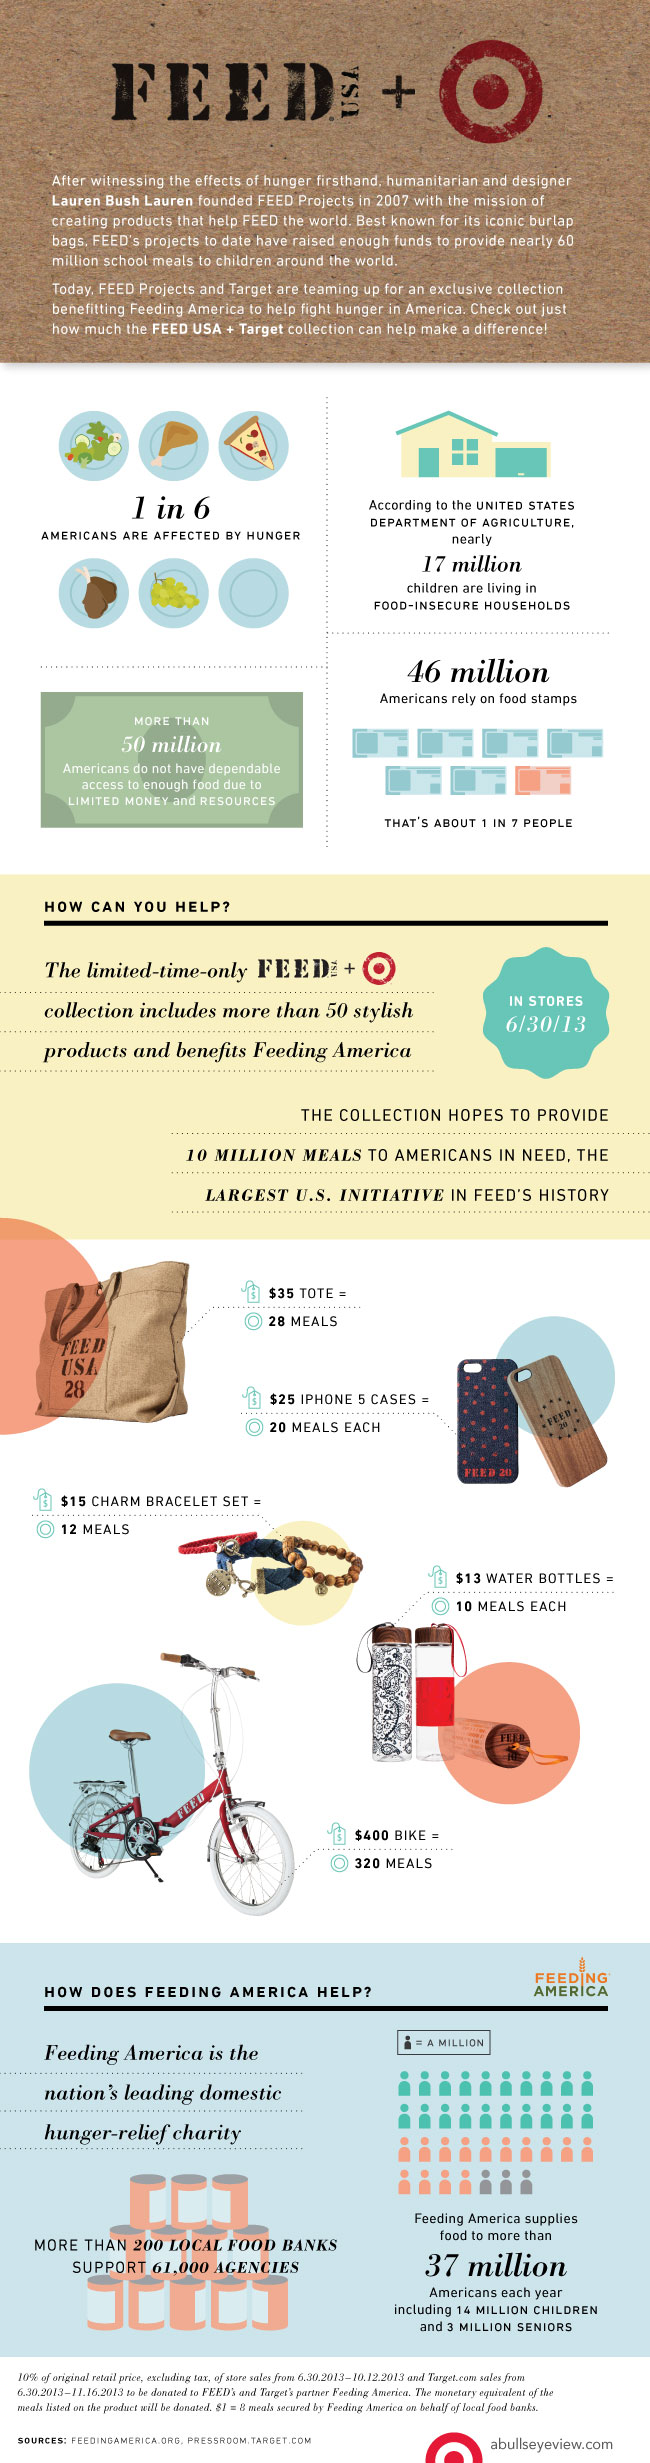 [infographic] Feed Usa + Target: A Fashionable Way To Fight Hunger